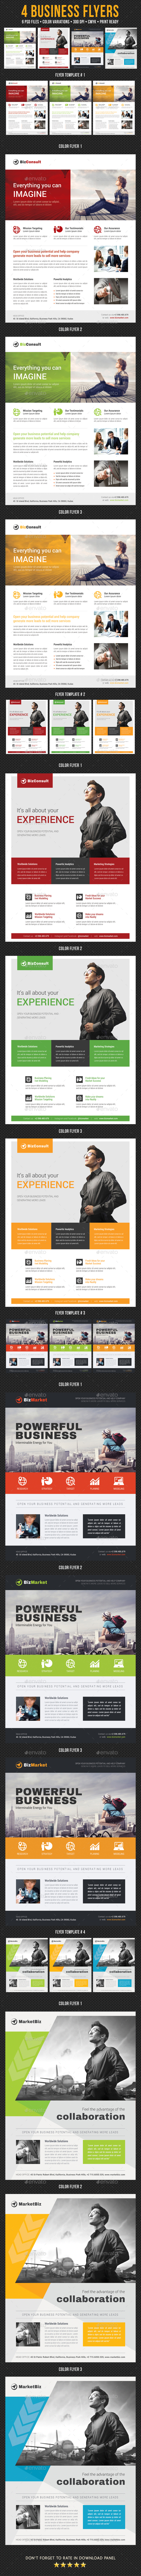 4 Corporate Business Flyer Templates Bundle V5 - Corporate Flyers